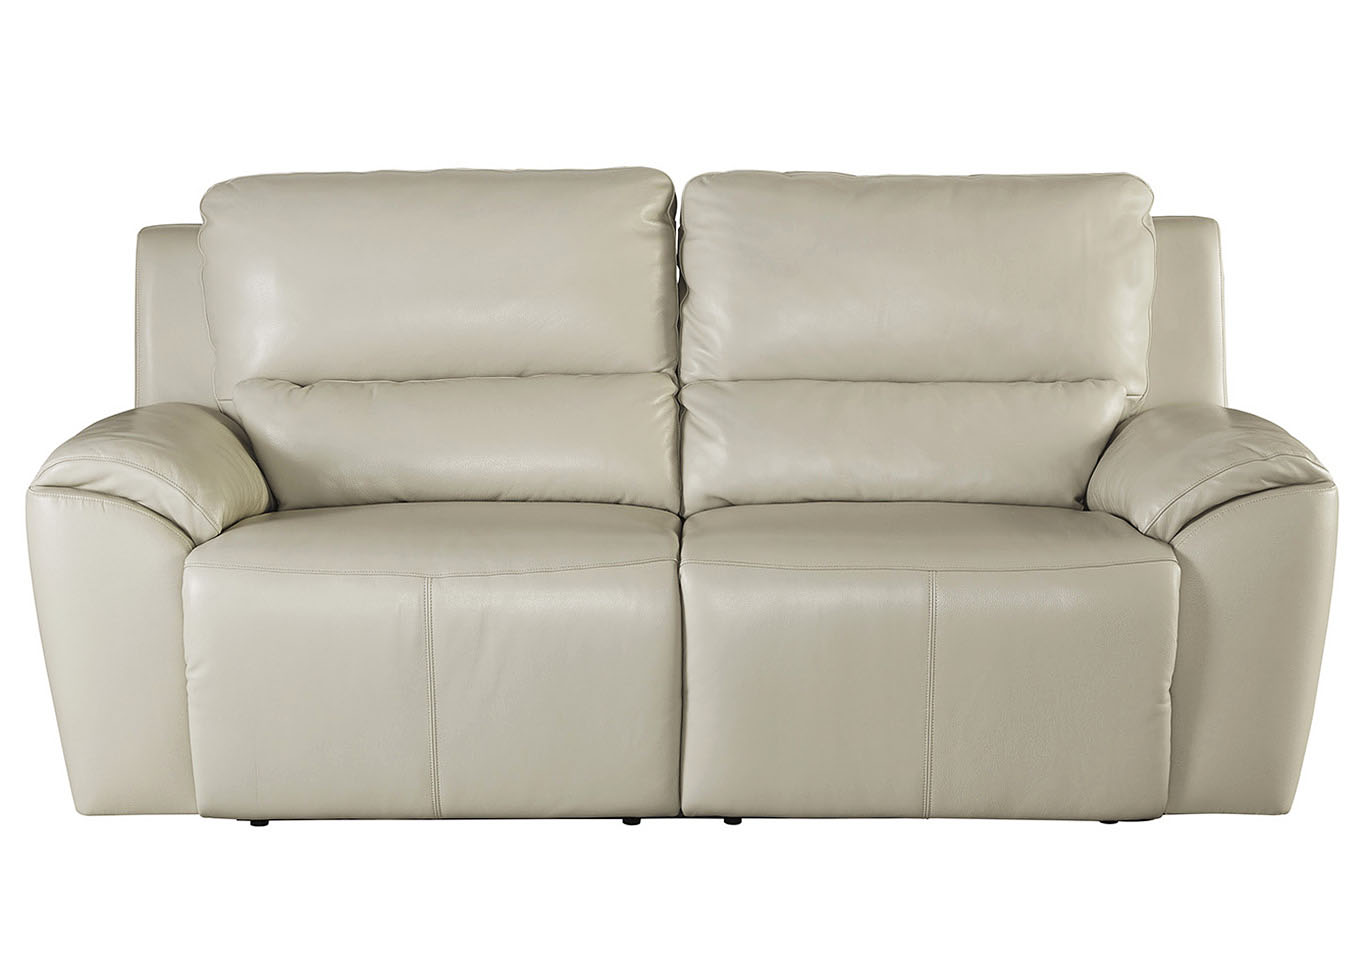 Valeton Cream 2 Seat Reclining Sofa,Signature Design By Ashley